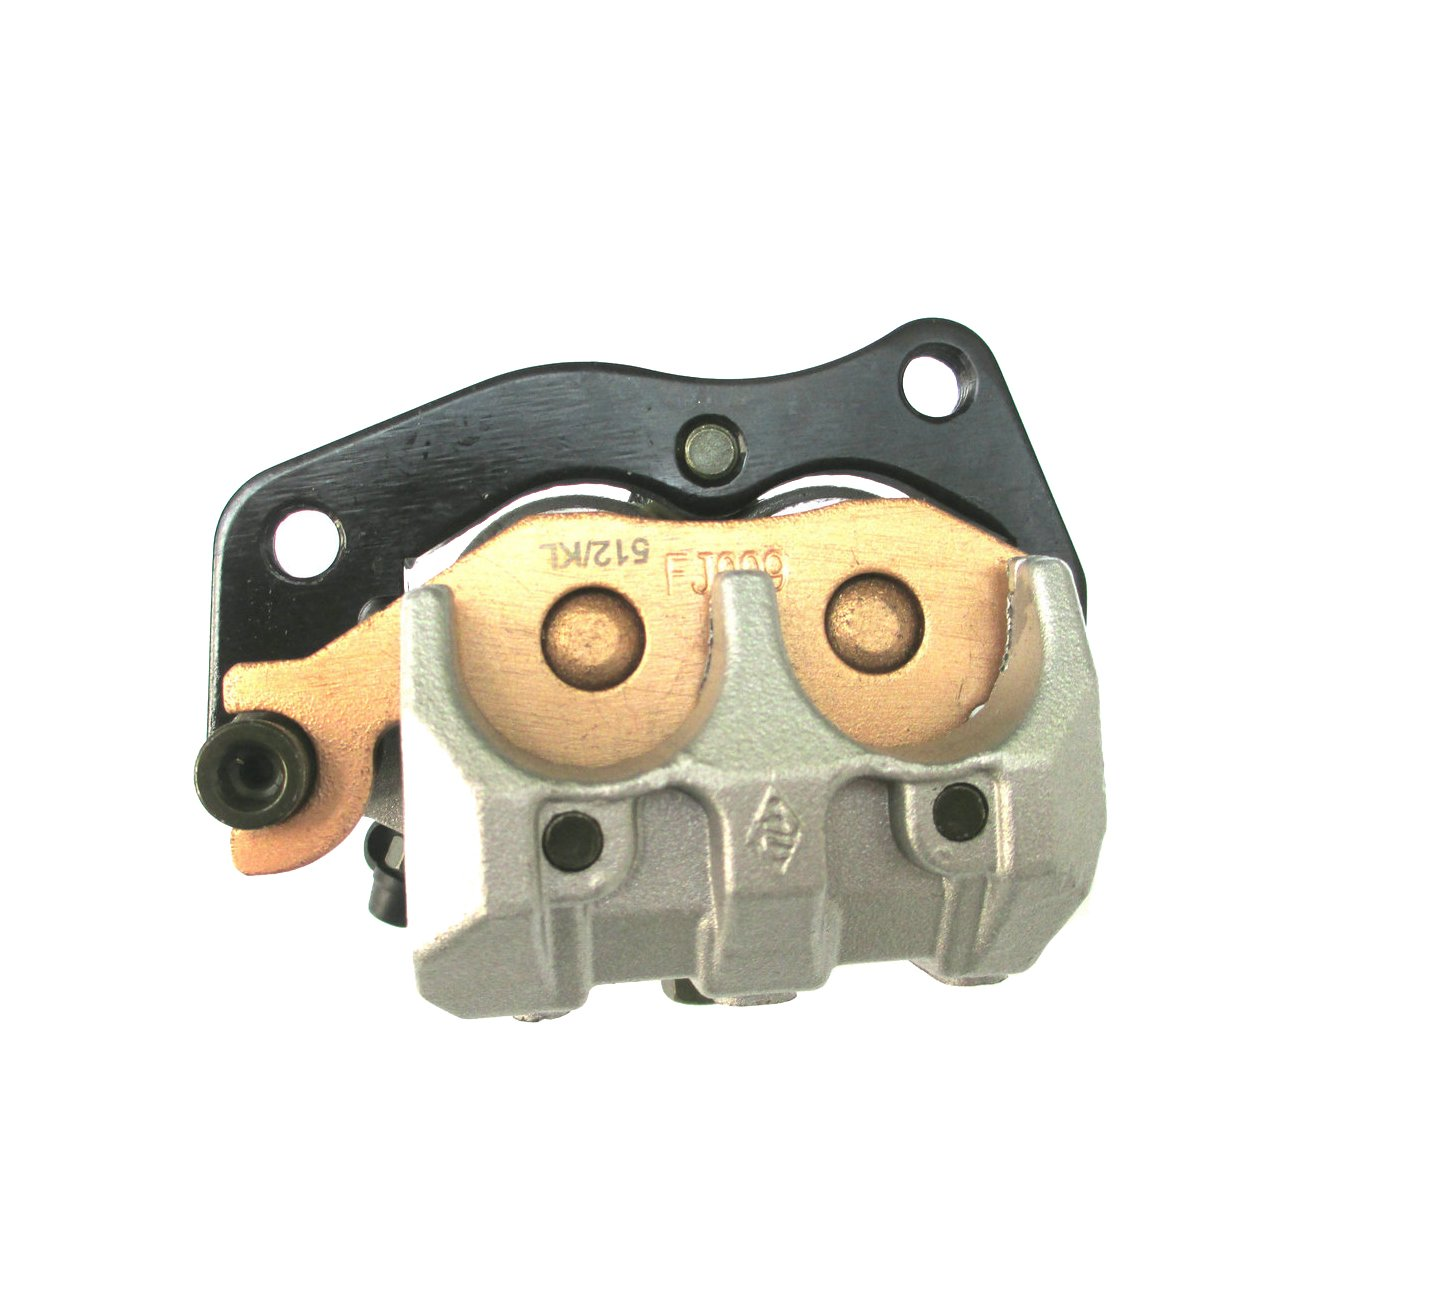 New Left & Right Front Brake Caliper Replacement For YAMAHA RHINO 700 YXR 700 2008-2013